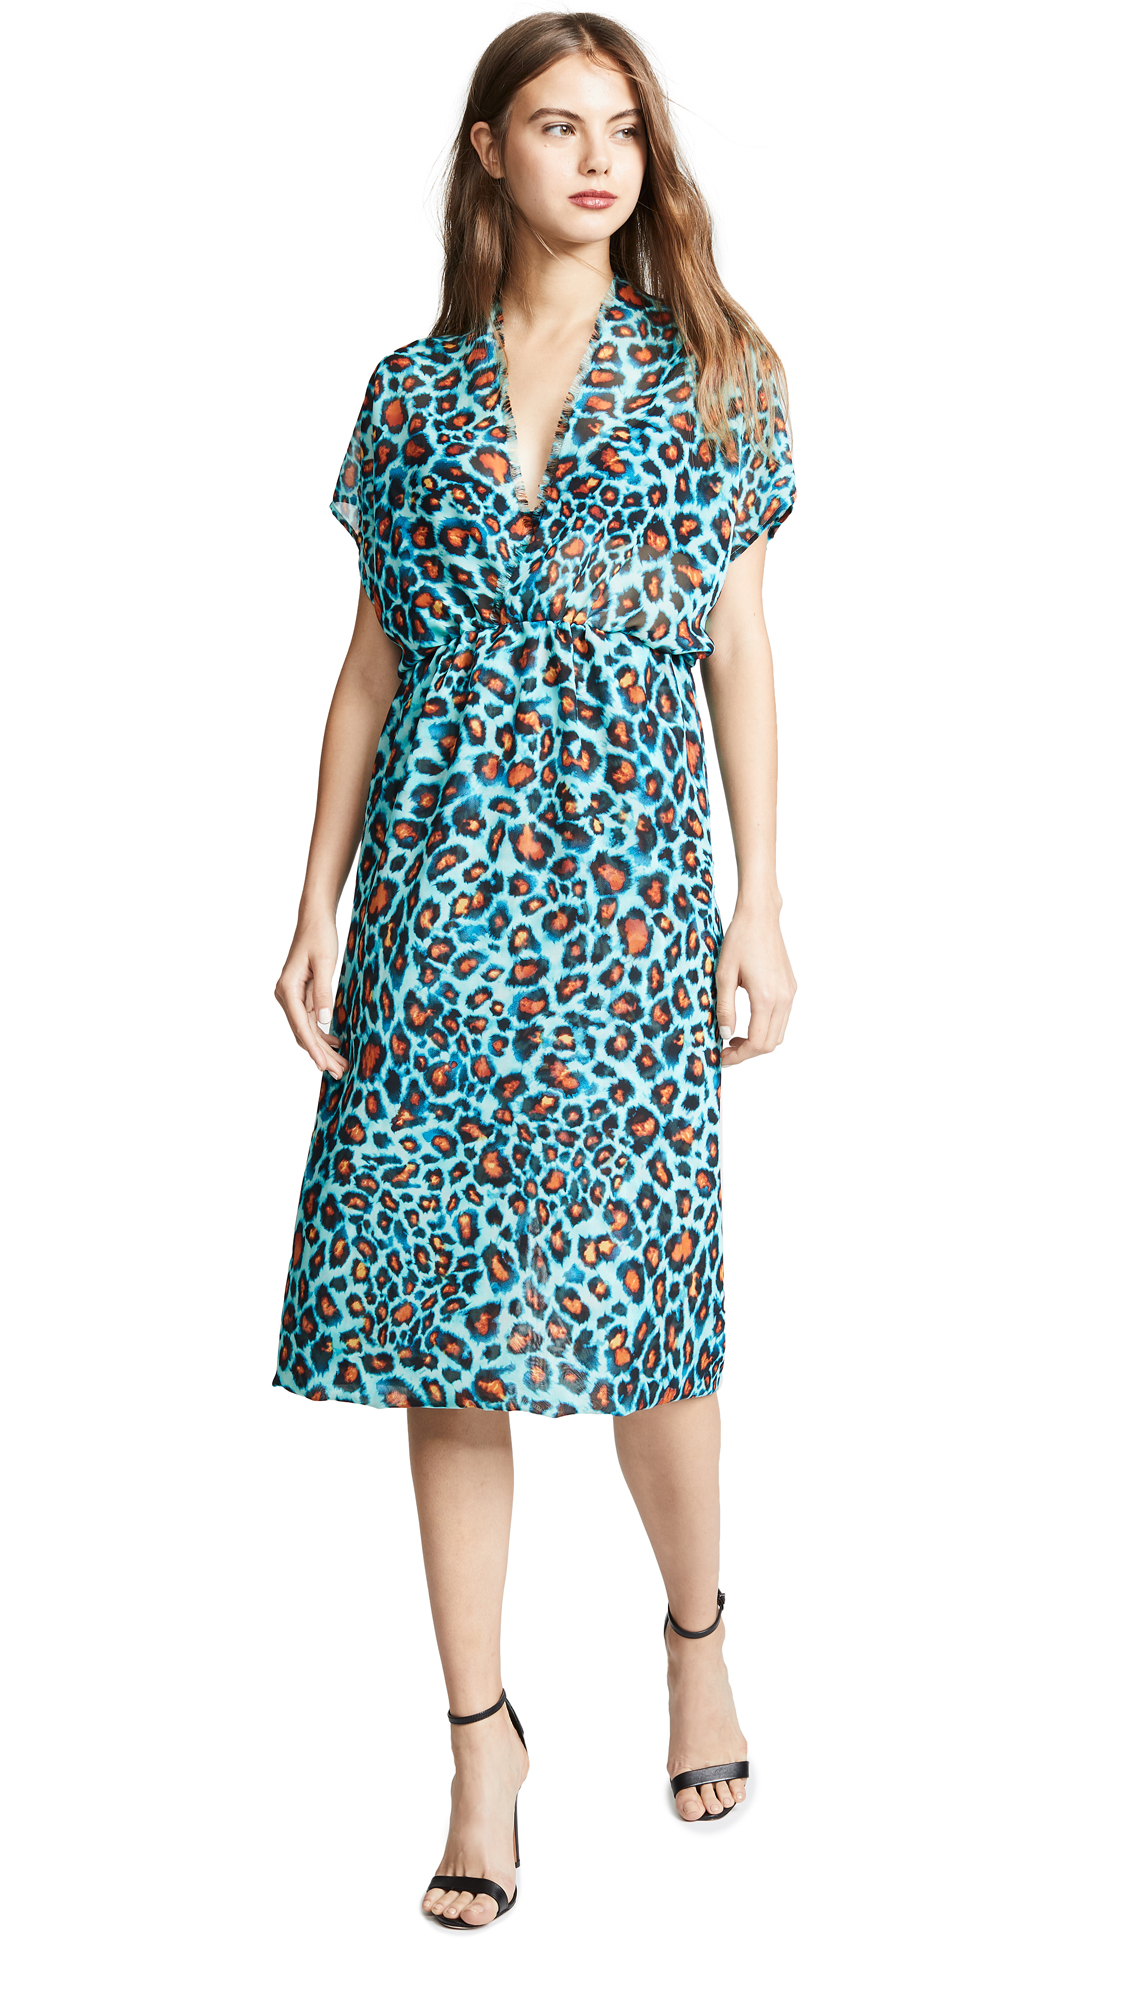 Loyd/Ford Electric Leopard Dress